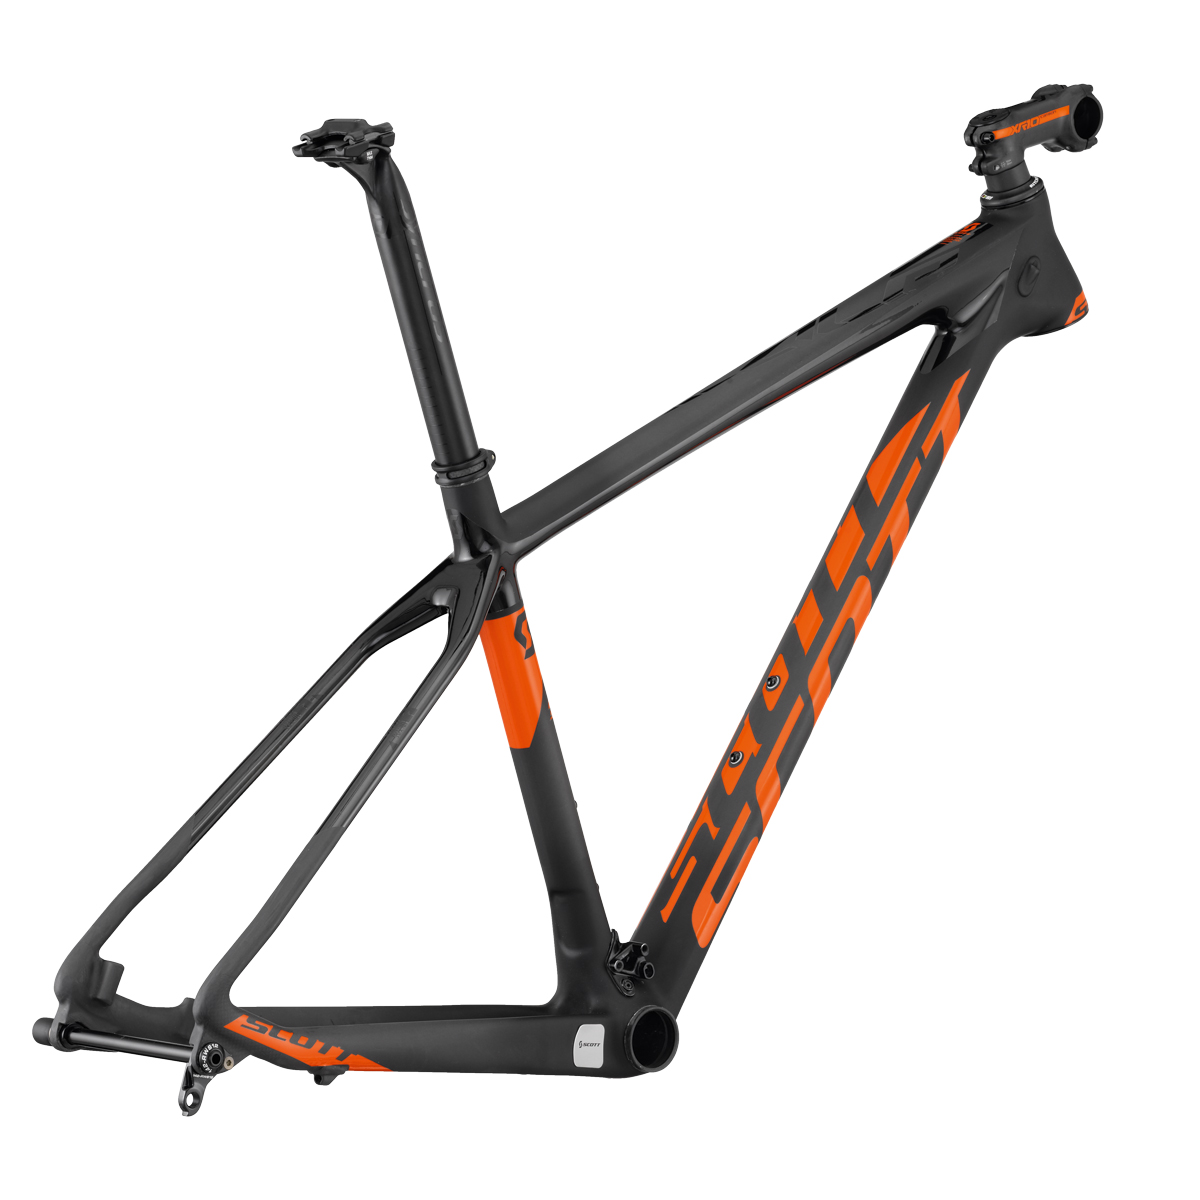 3524cabb007 Scott Scale 700 SL Frame - High Peaks Cyclery - Lake Placid, NY